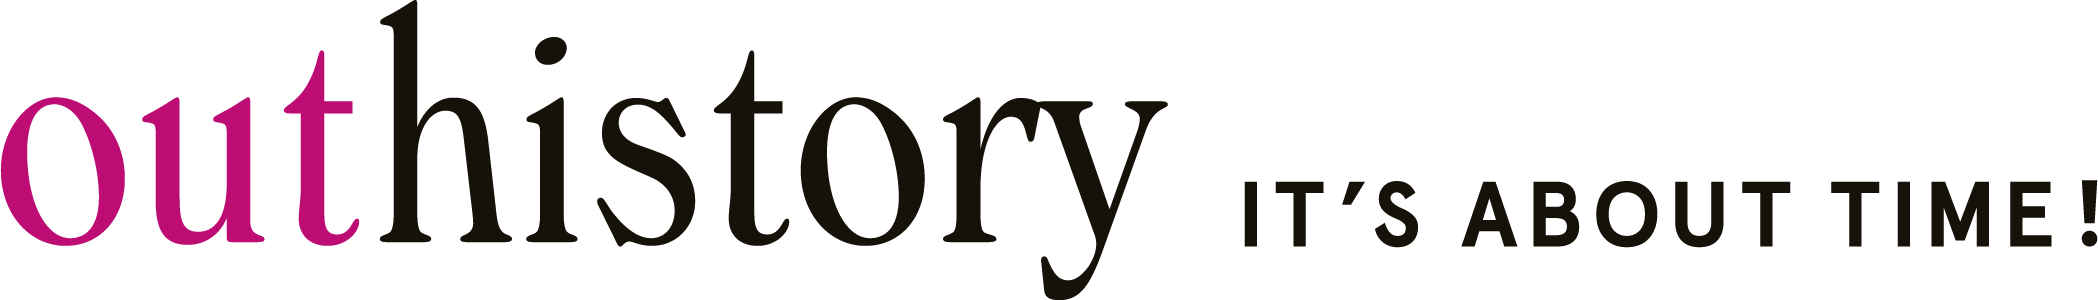 outhistory.org